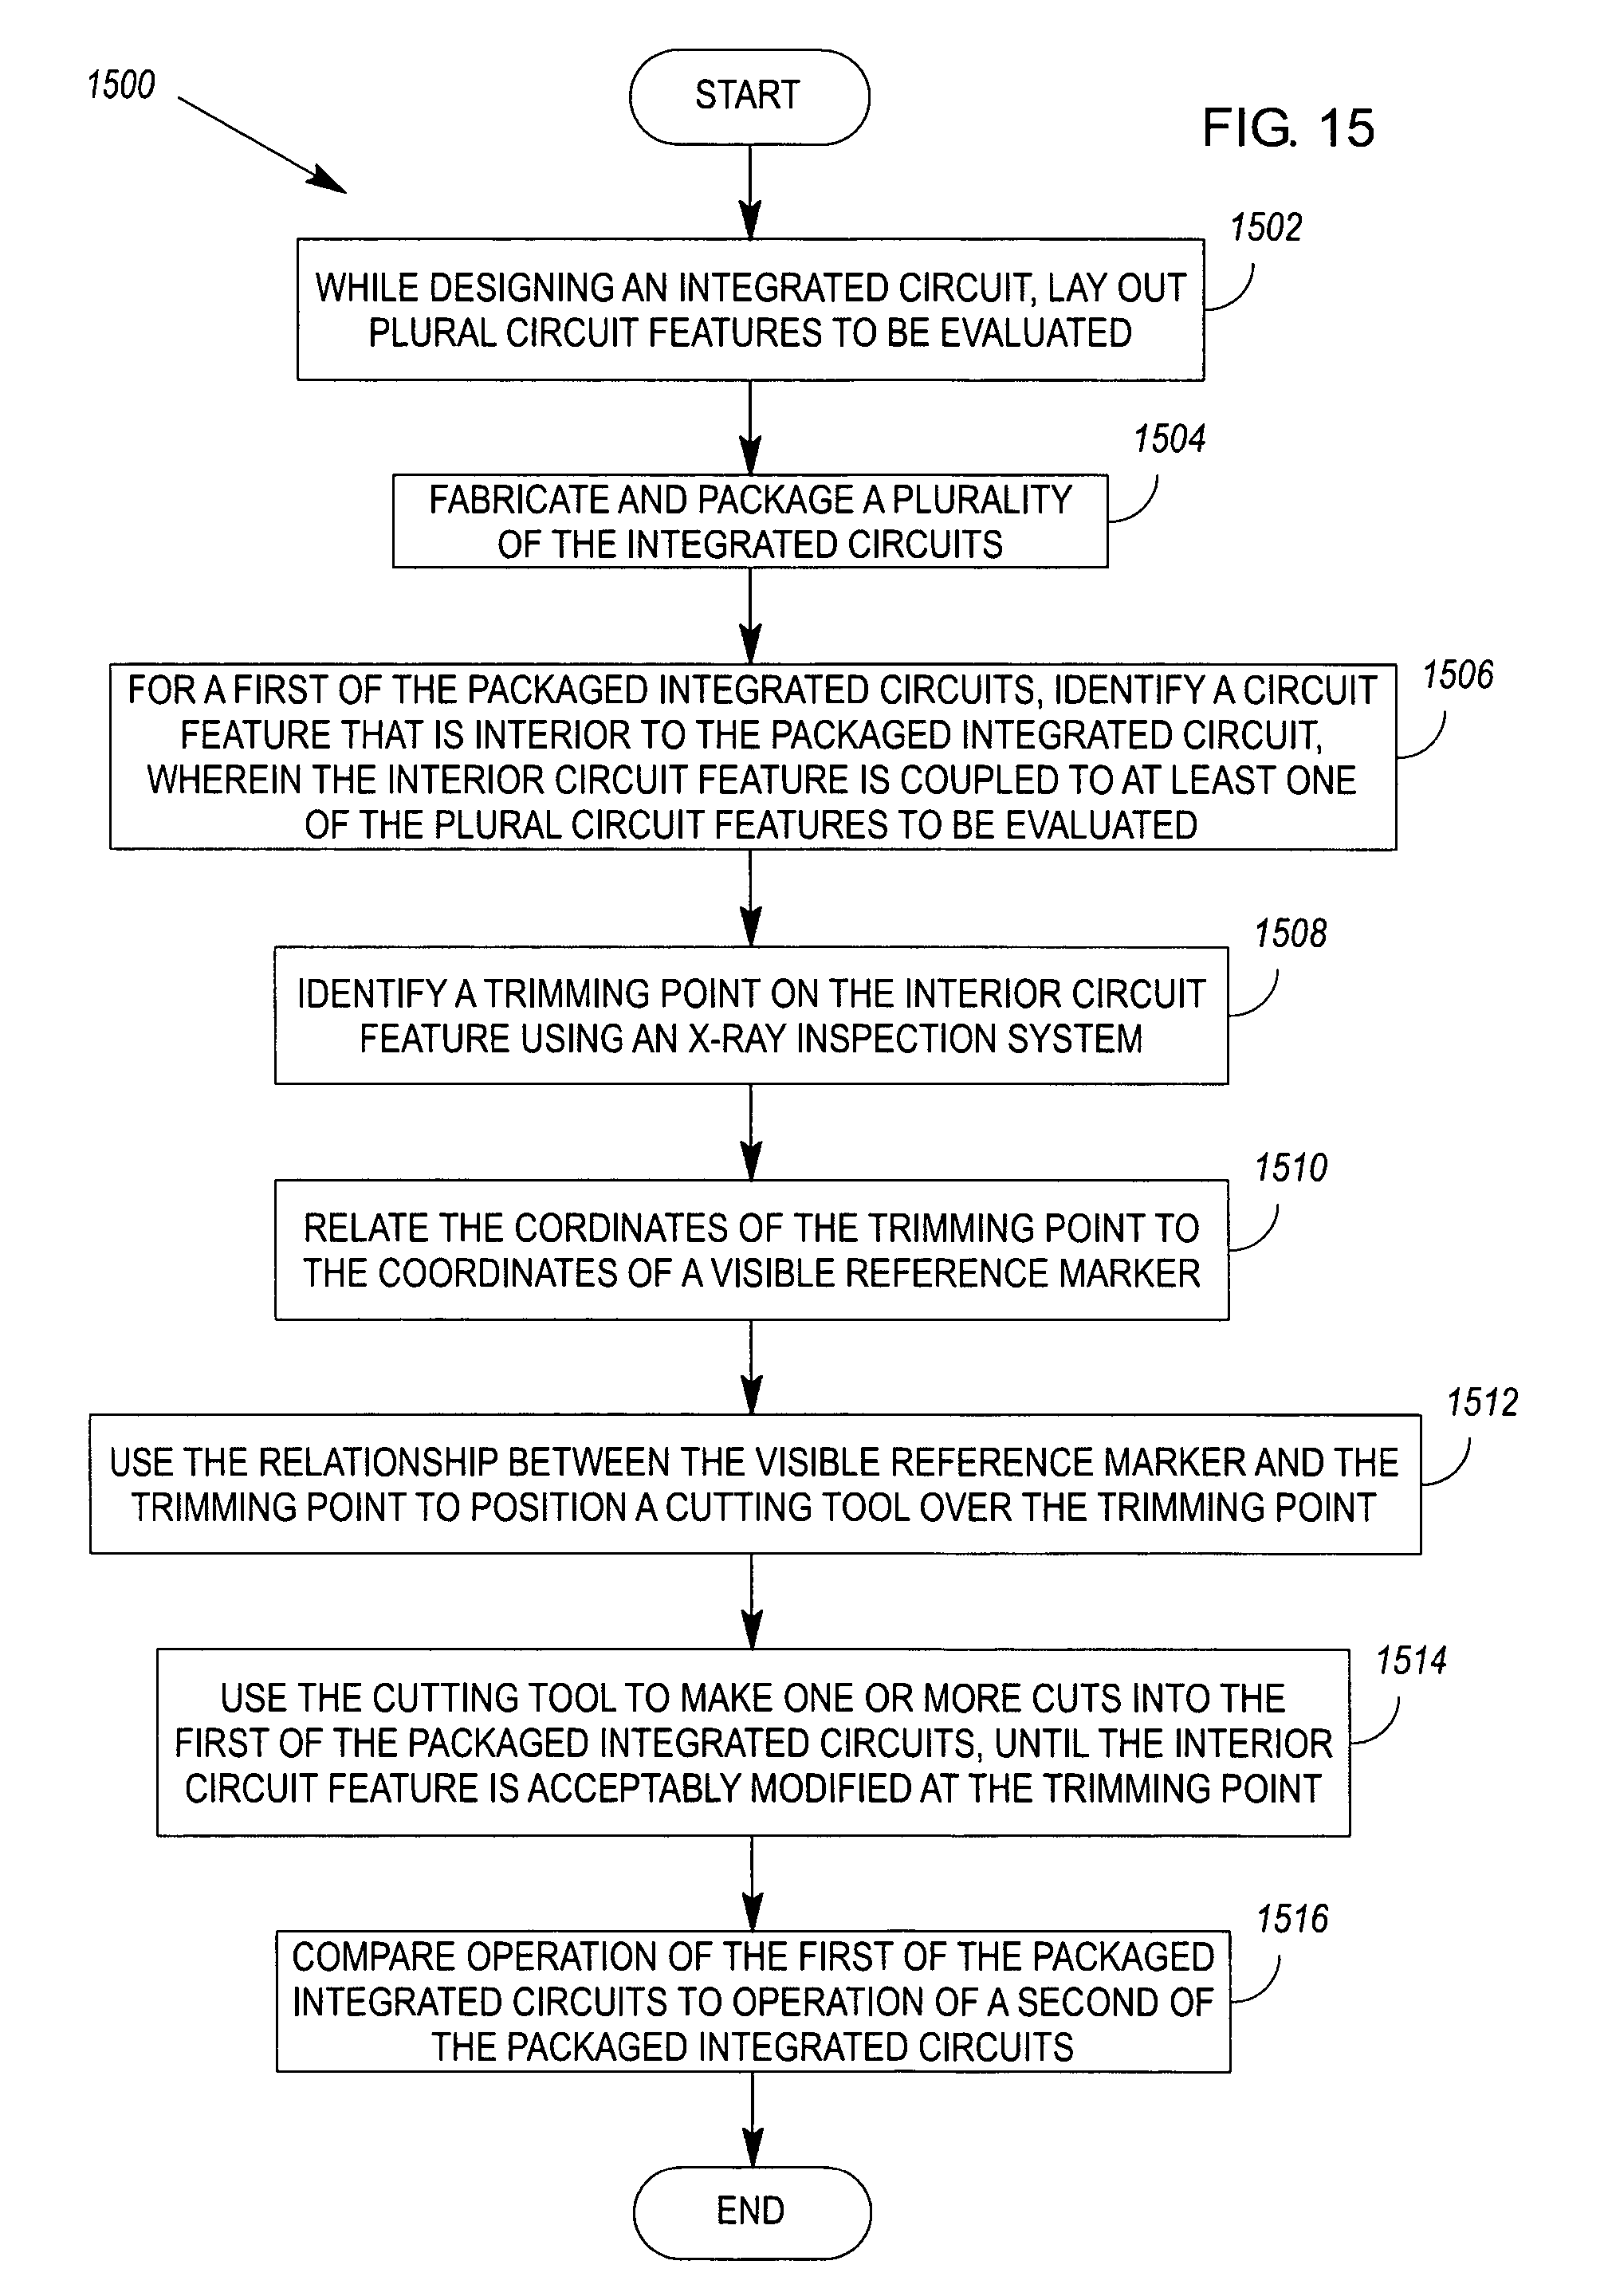 Patente Us7234232 Methods For Designing And Tuning One Or More Uses Of Integrated Circuits Patent Drawing